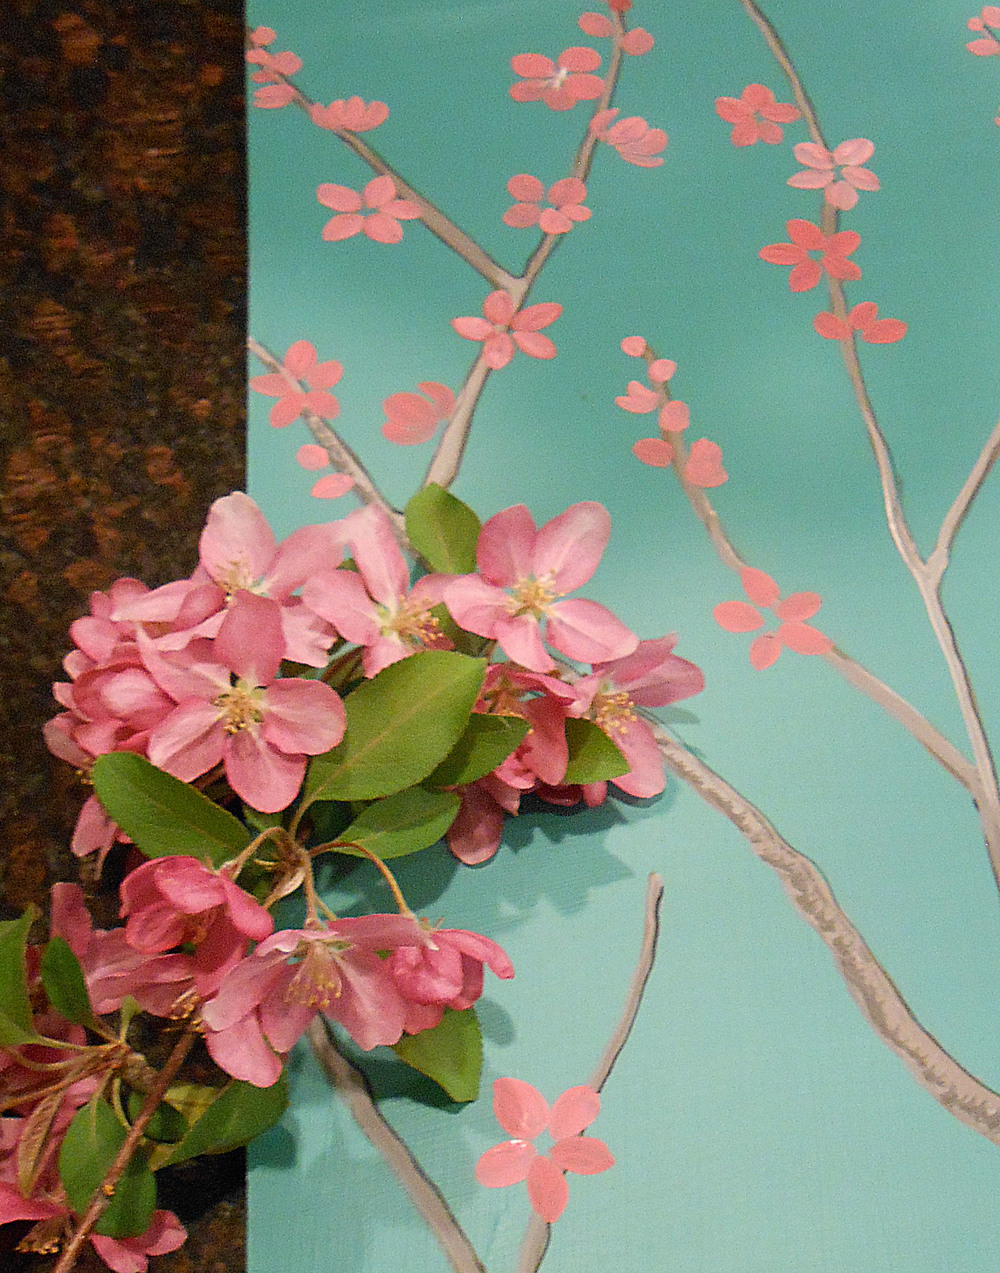 When I first start a painting, sometimes it just takes one thing to inspire me. In this case, it was two things. I got the idea from some great wallpaper that I saw in a magazine. Then, because it was early spring, I picked a branch from a beautiful blooming tree.